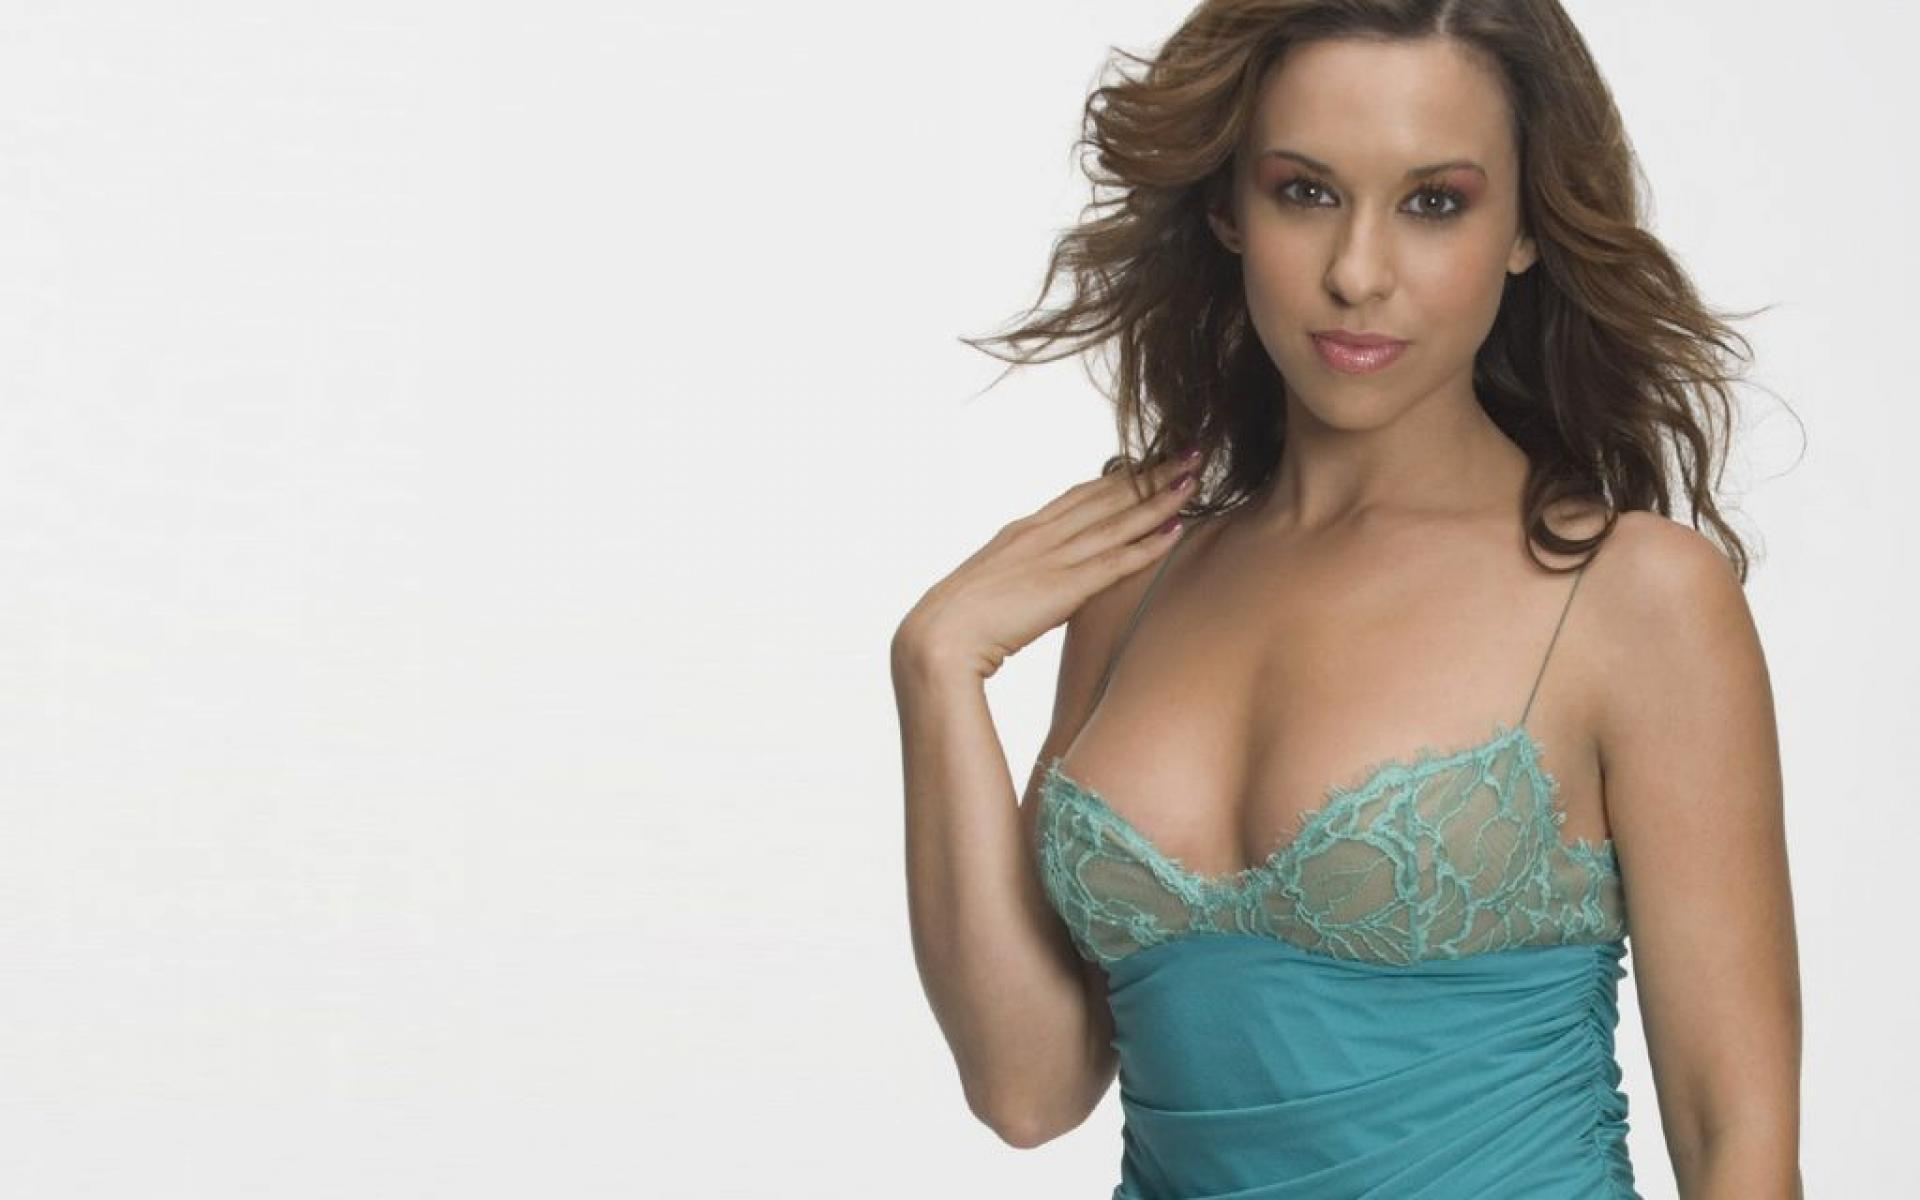 Naked Pics Of Lacey Chabert